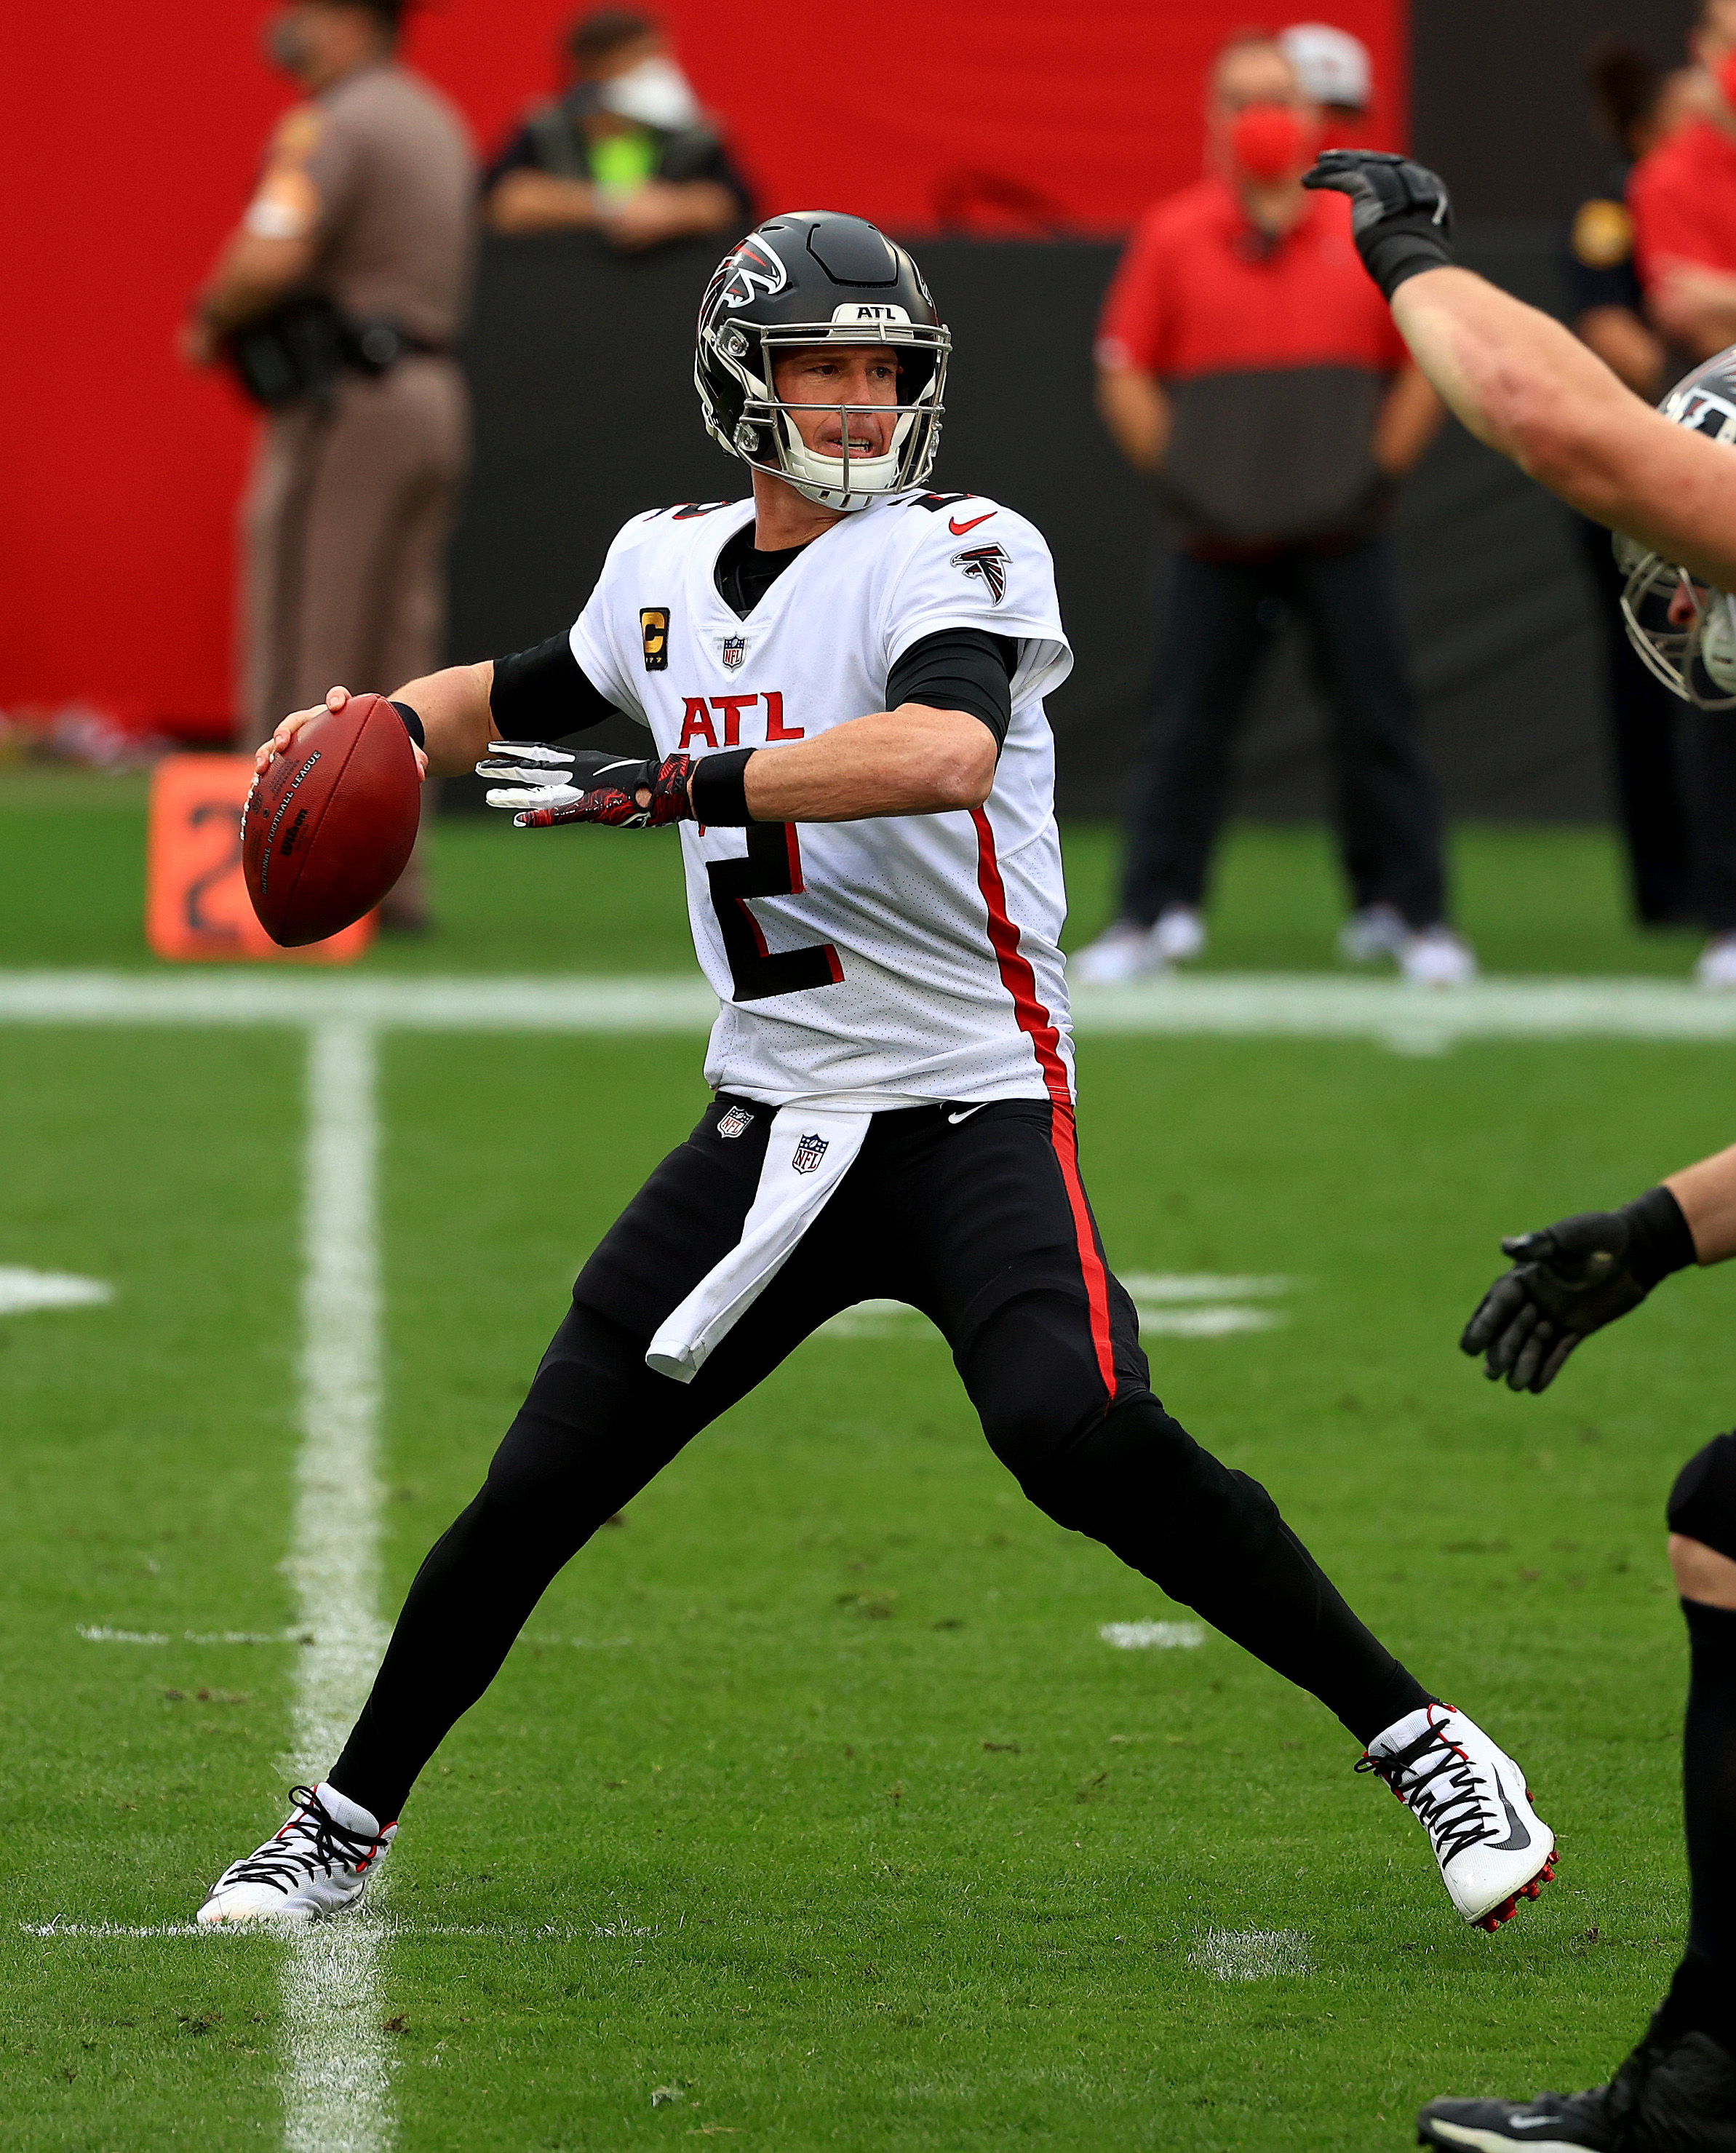 Matt Ryan #2 of the Atlanta Falcons looks to pass during a game against the Tampa Bay Buccaneers at Raymond James Stadium on January 03, 2021 in Tampa, Florida.